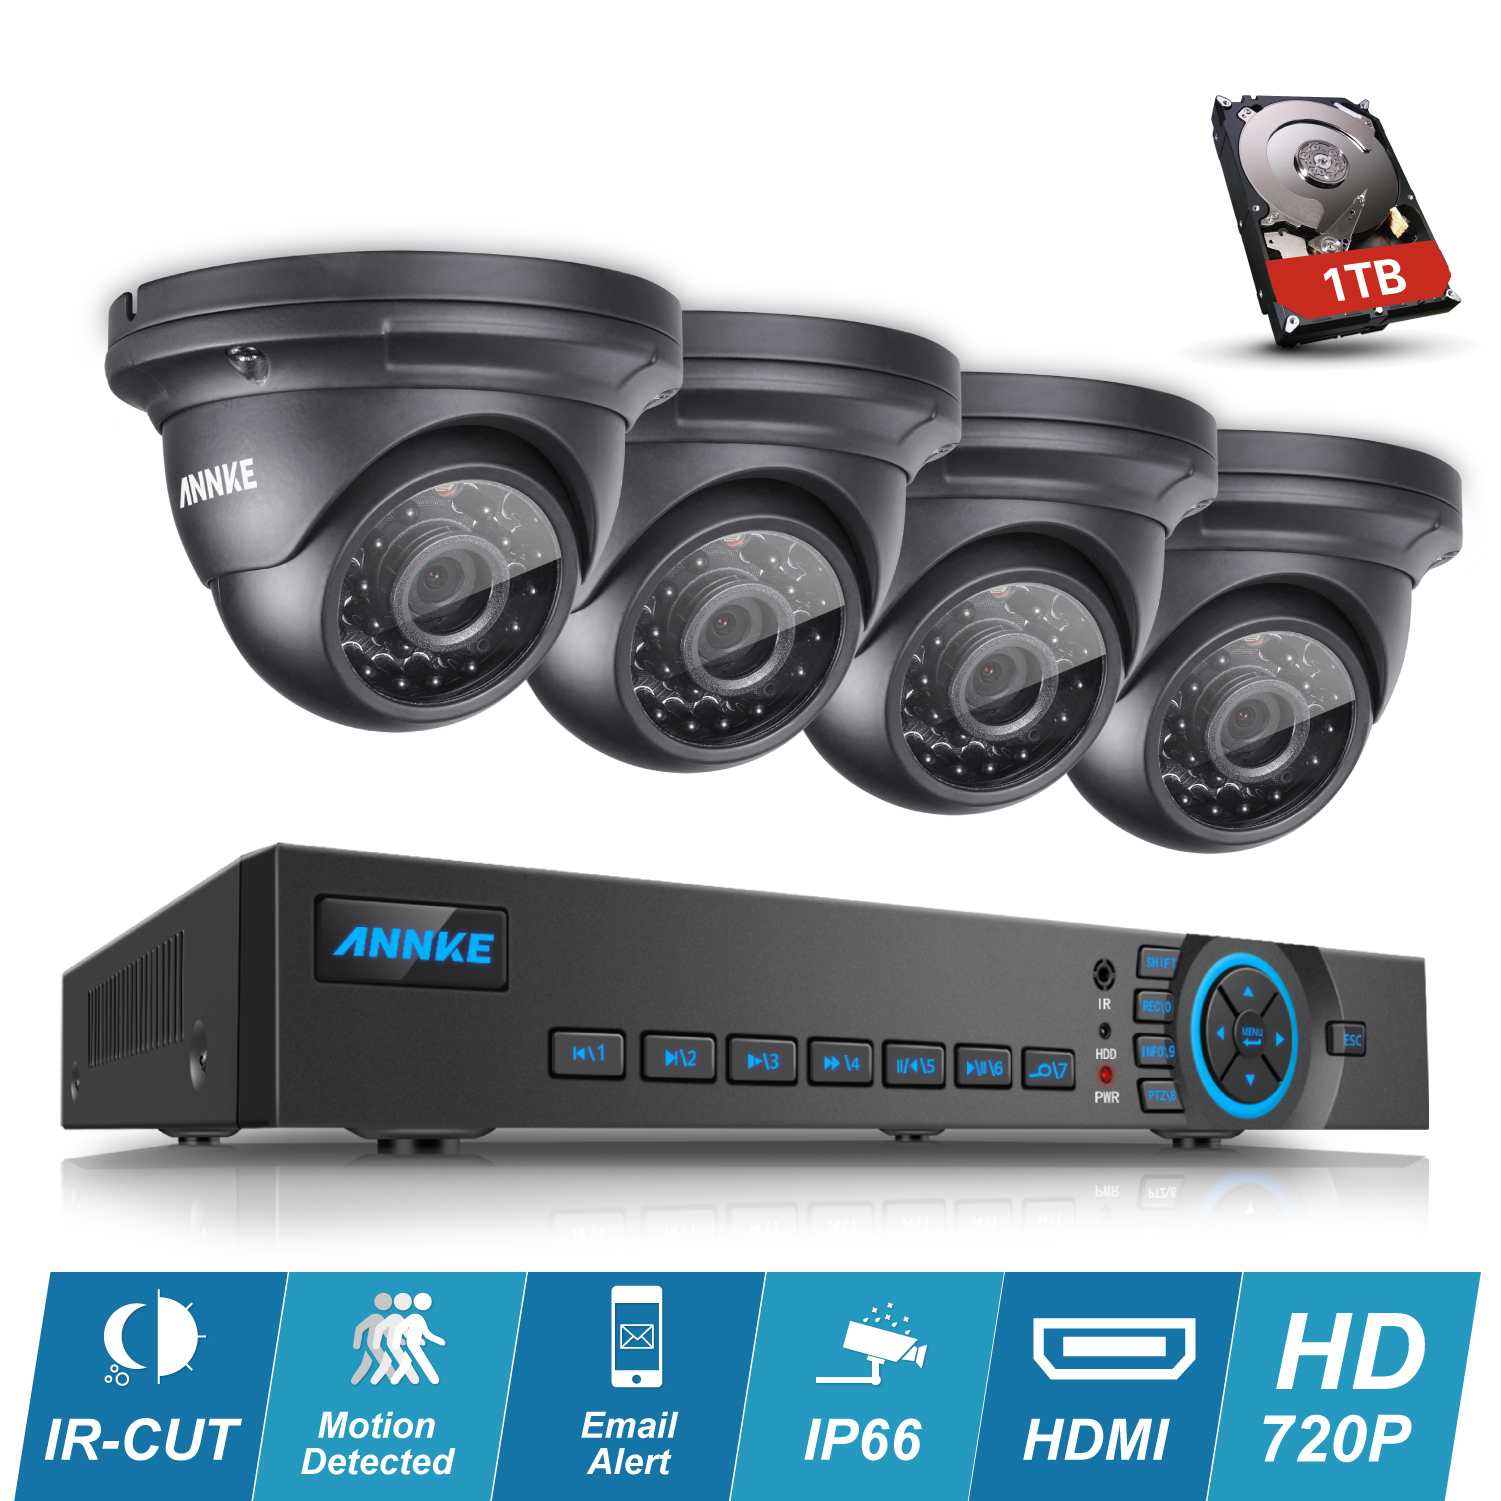 ANNKE 4CH 720P AHD CCTV DVR NVR Outdoor IR Home Security Surveillance Camera System With 1TB HDD